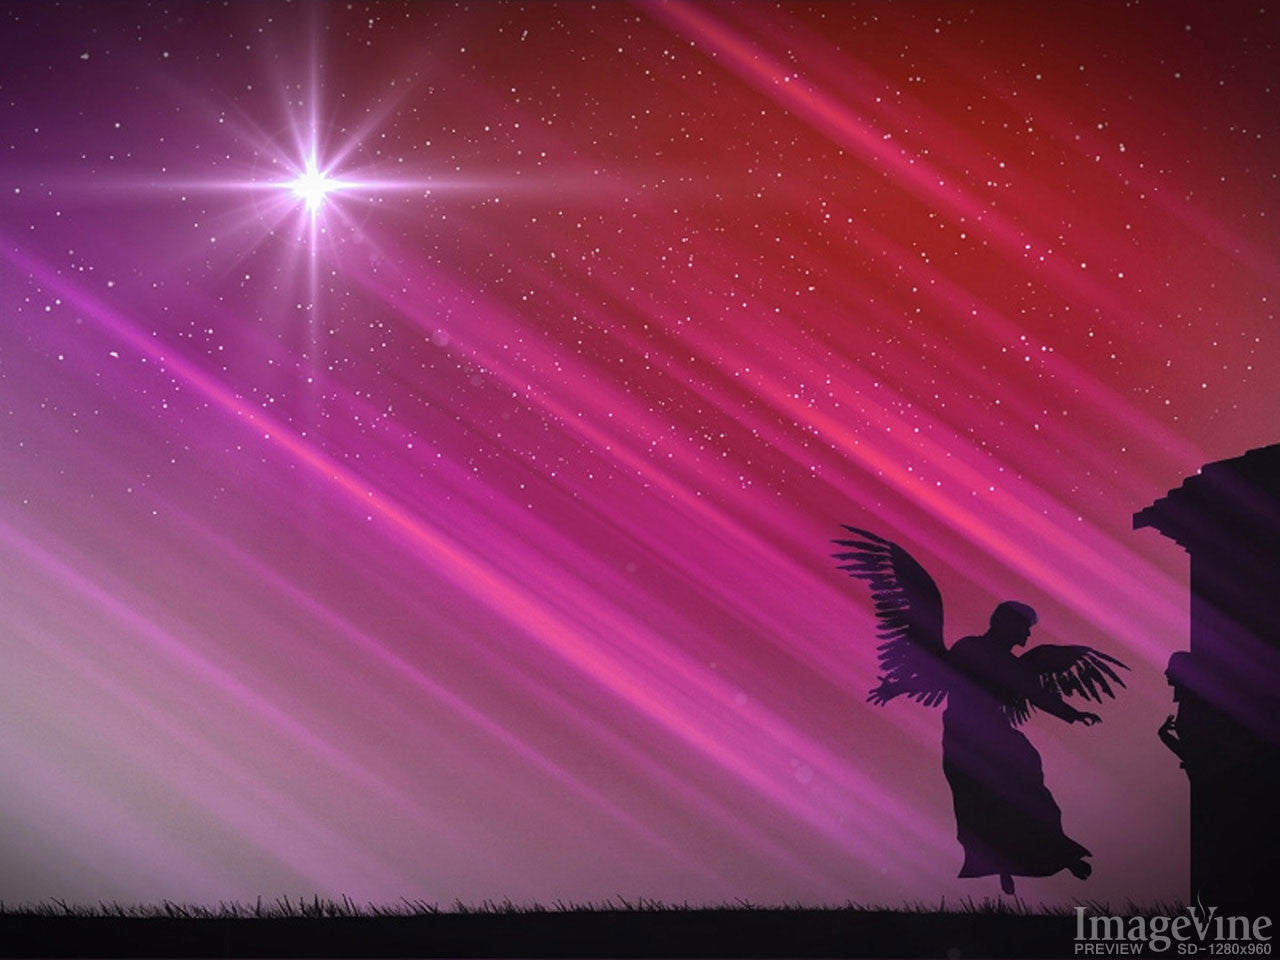 Angels Christmas Background.The Christmas Story Backgrounds Imagevine